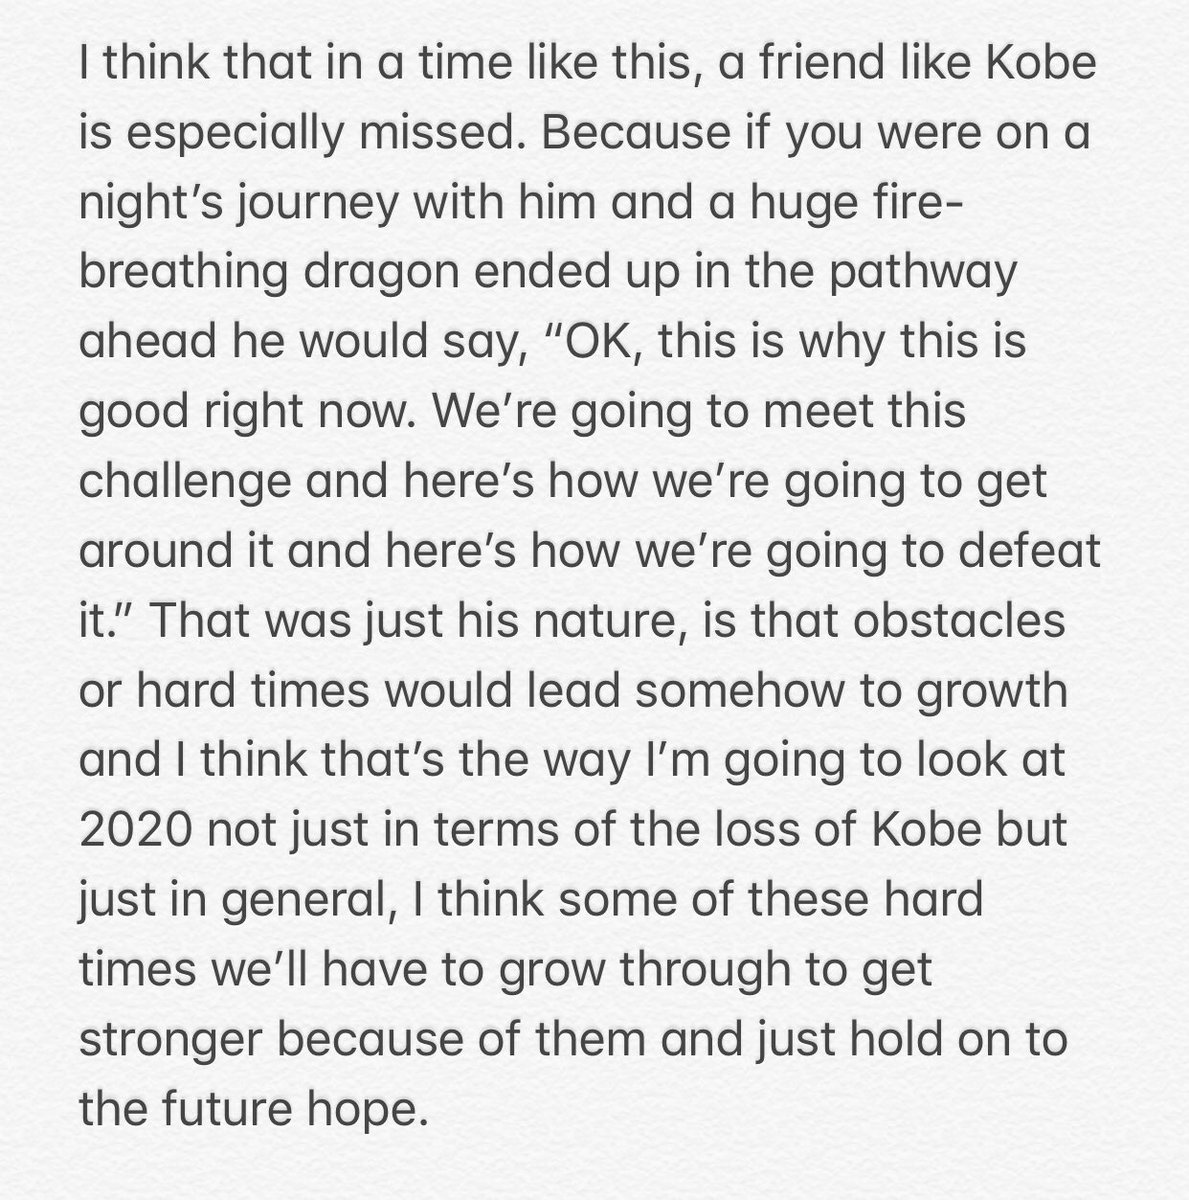 """Lakers GM Rob Pelinka just concluded a conference call with local writers and said, among many other things, that """"in a time like this, a friend like Kobe (Bryant) is especially missed."""" Here's his complete thought:"""